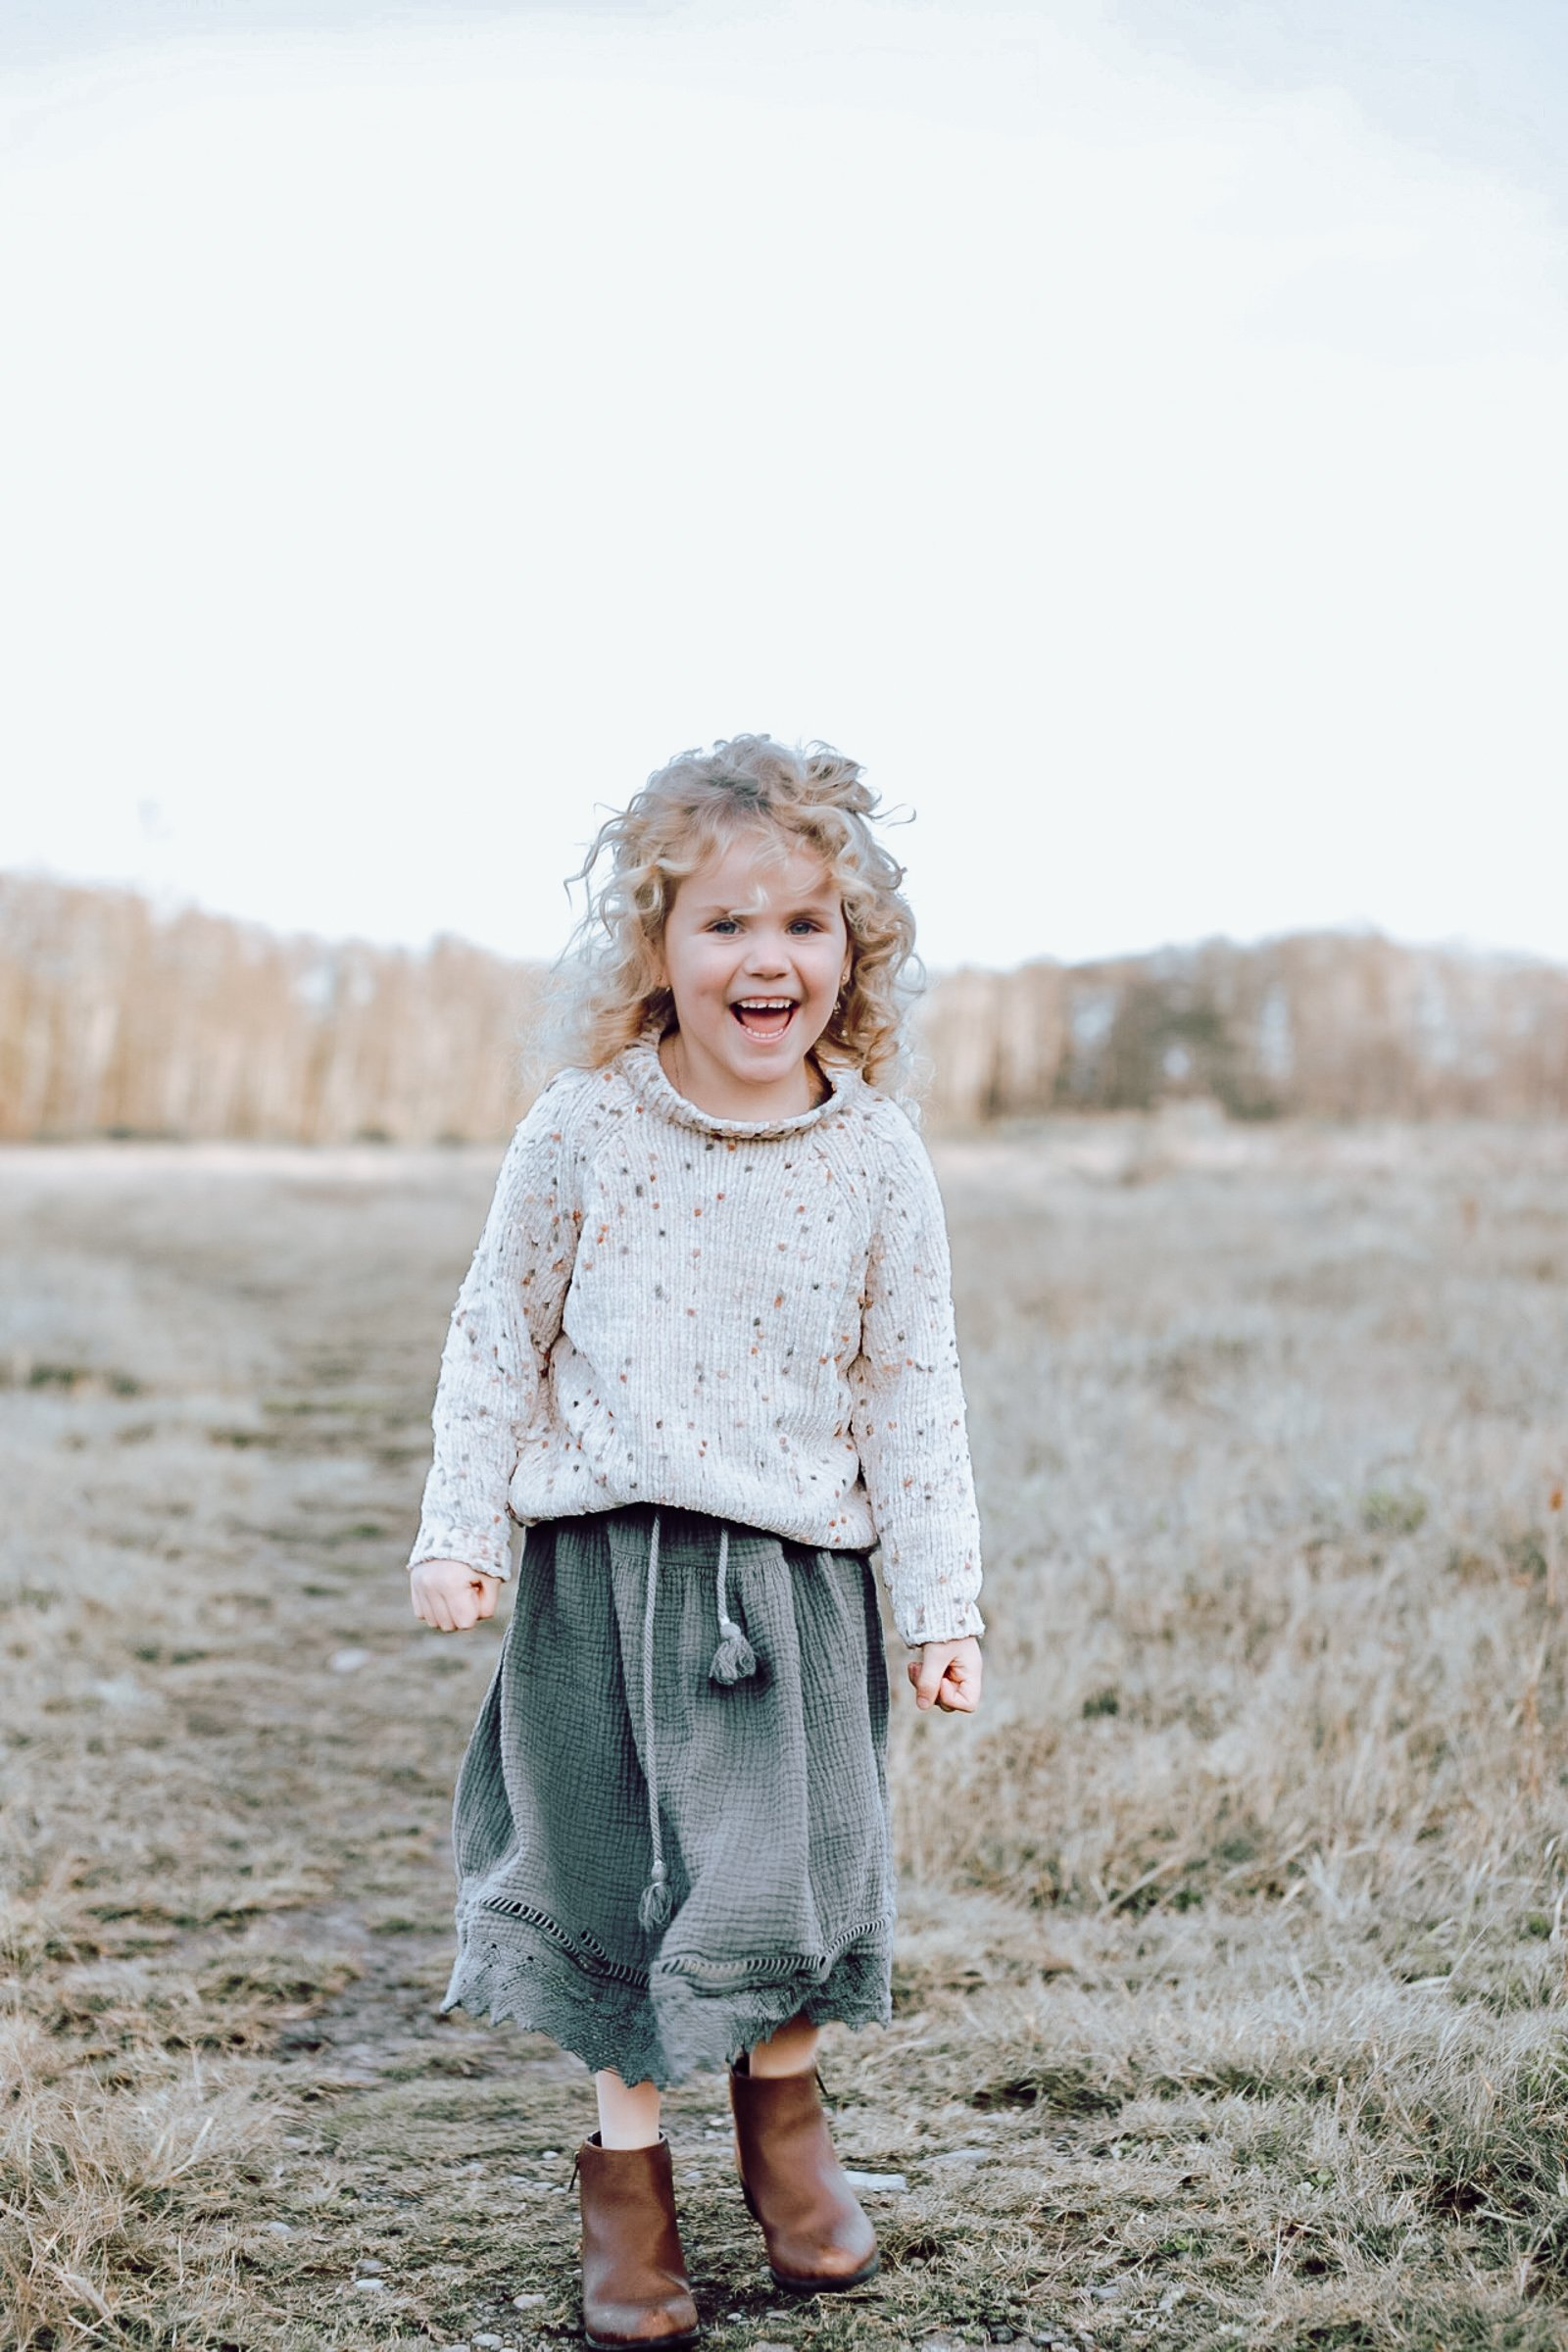 Rylee and Cru. An amazing small shop that makes hand dyed and trendy basics.